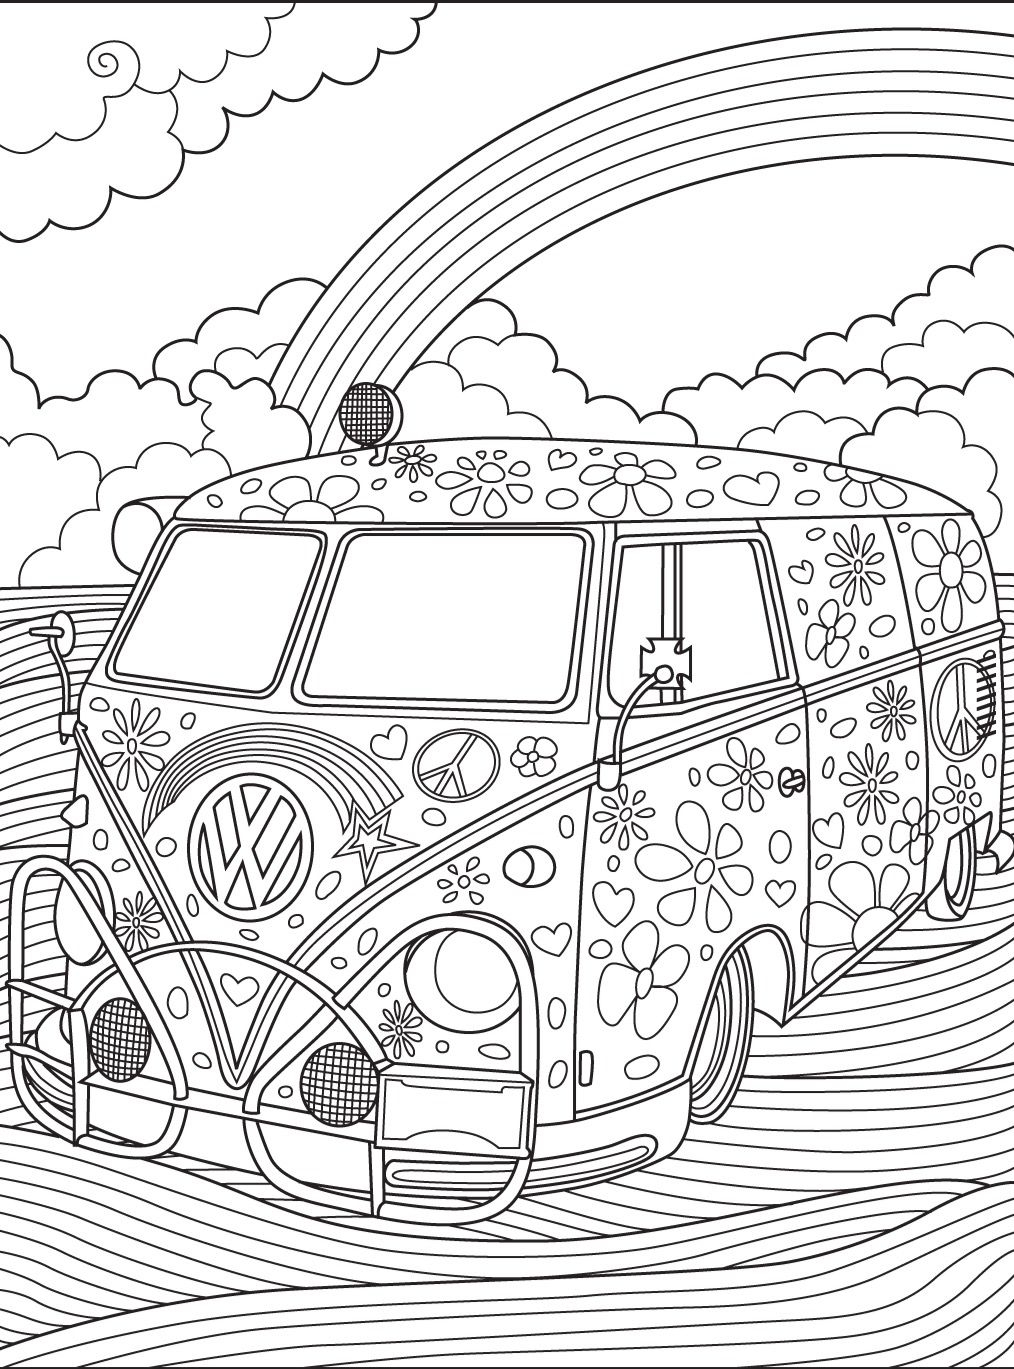 Volkswagen Beetle Coloring Pages  Collection 15f - Free For Children